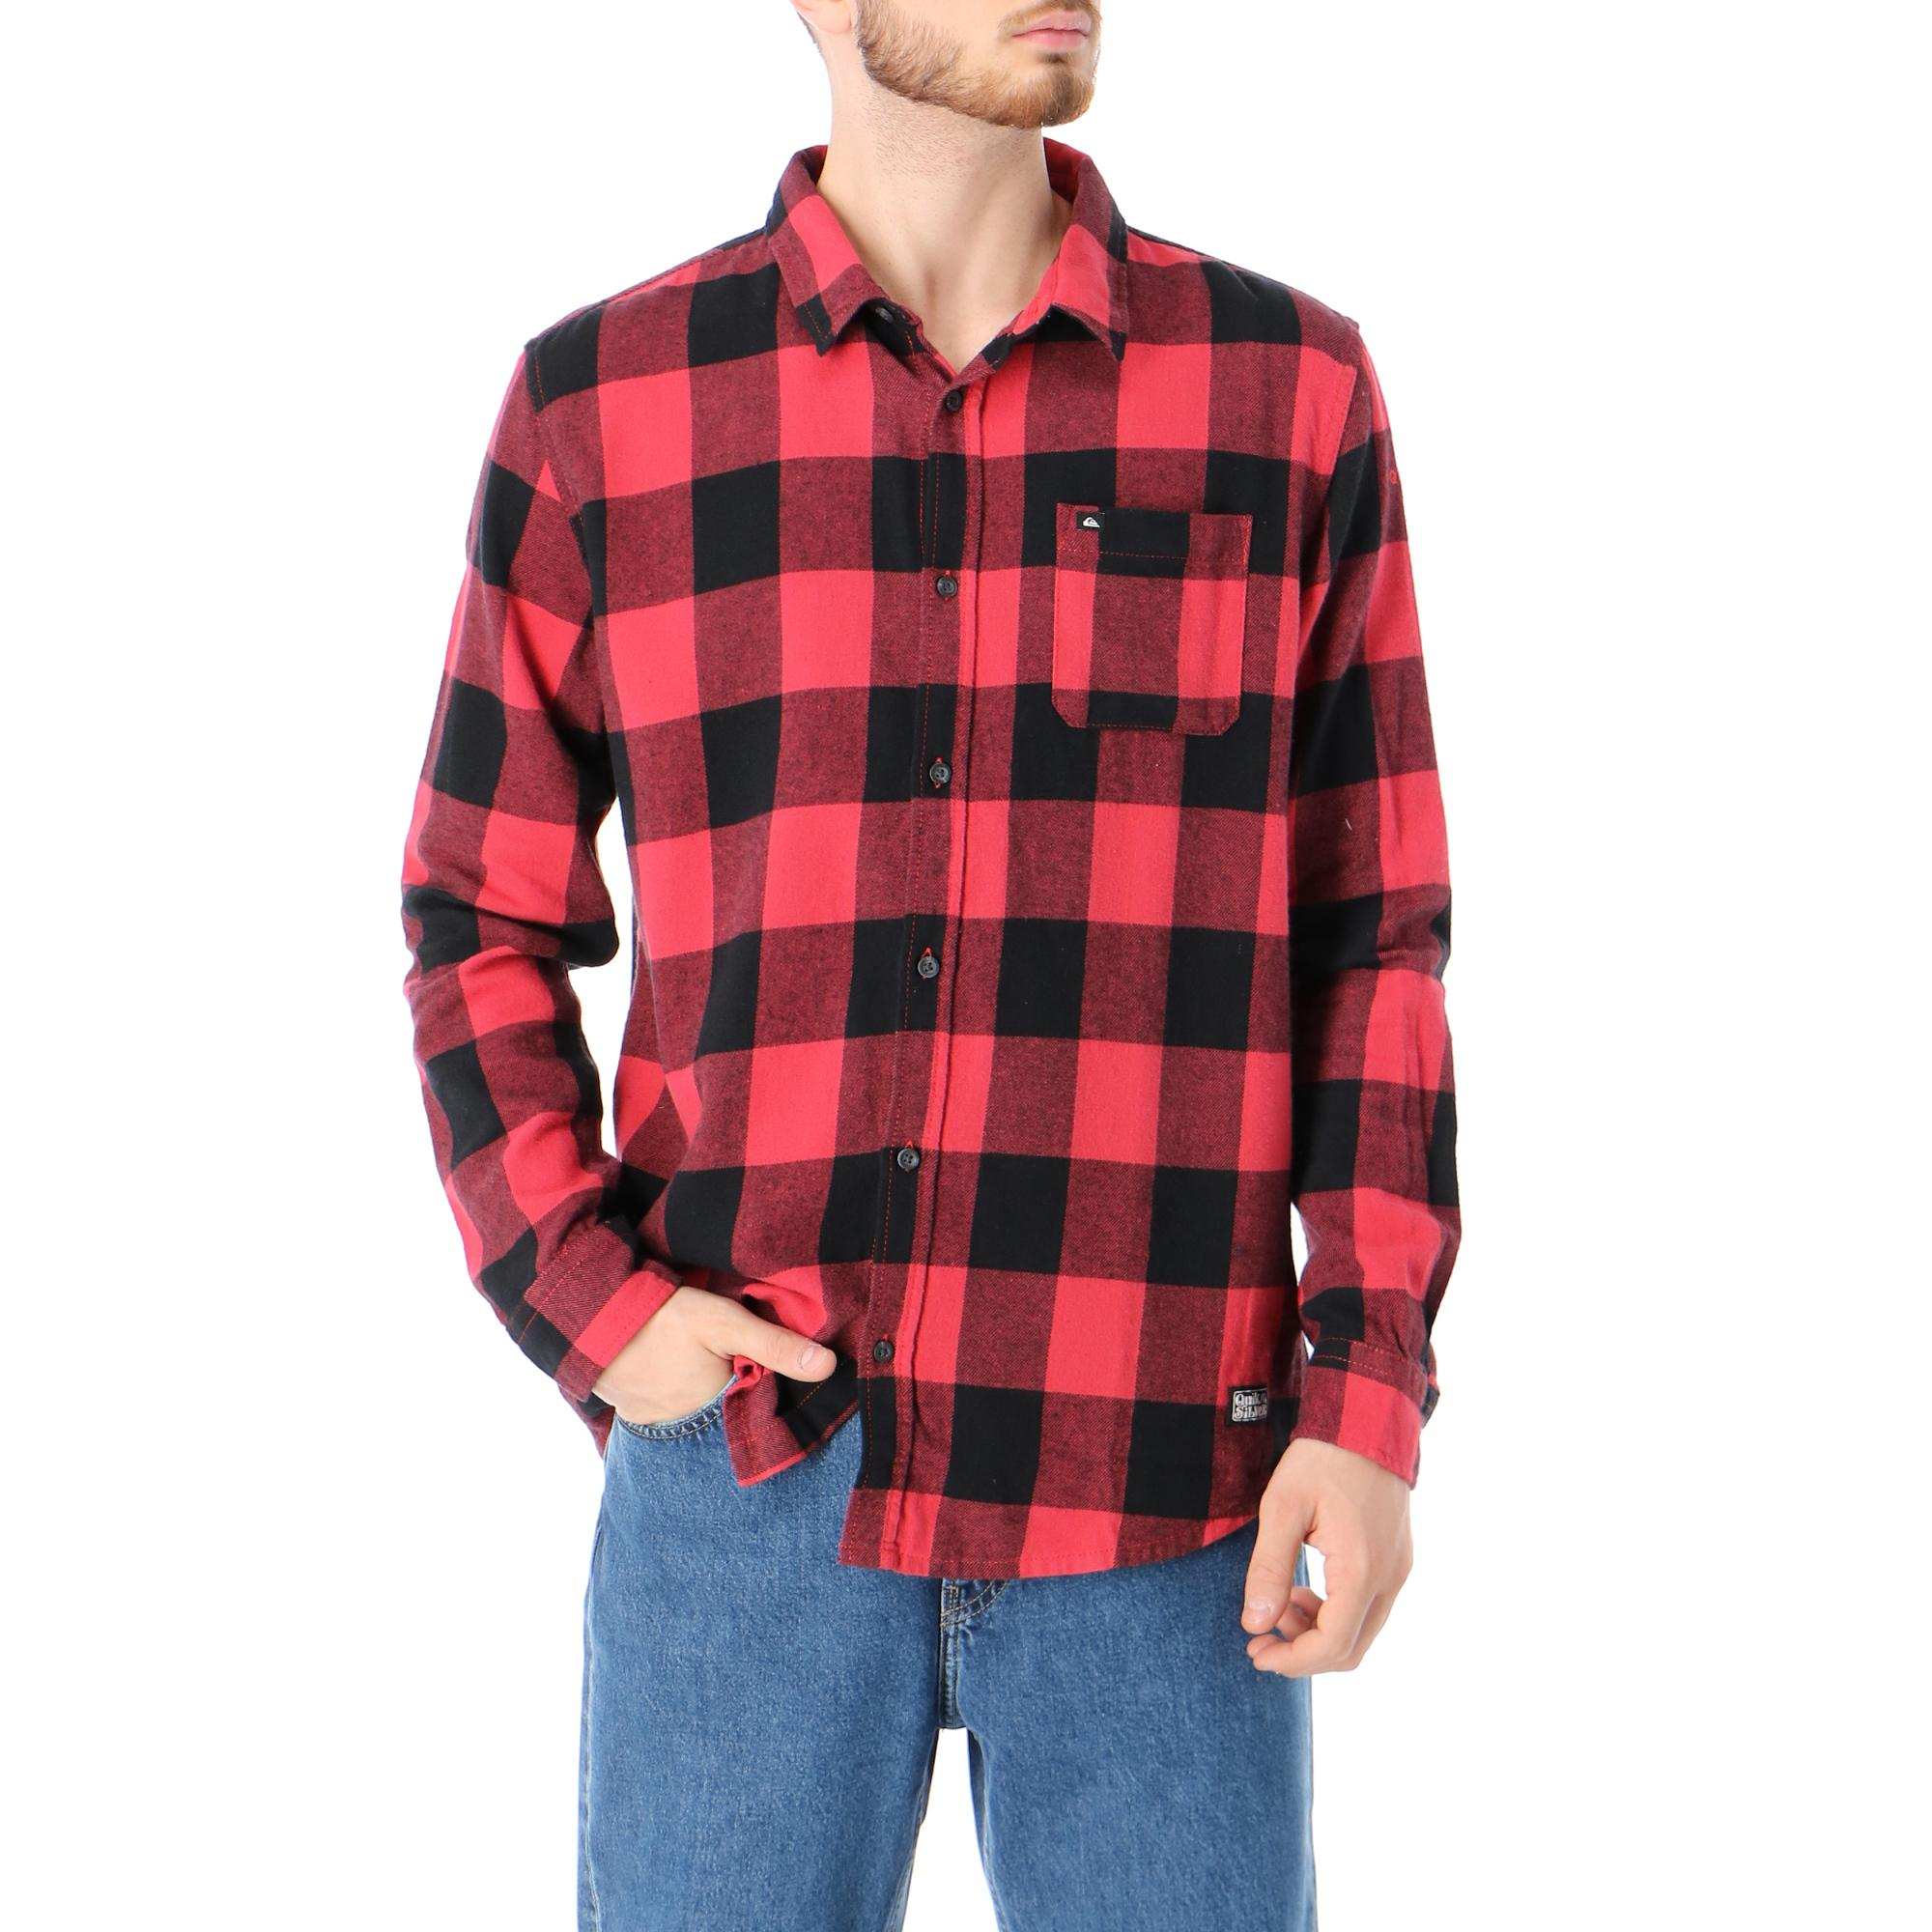 Quiksilver Motherfly Flannel Americas red motherfly